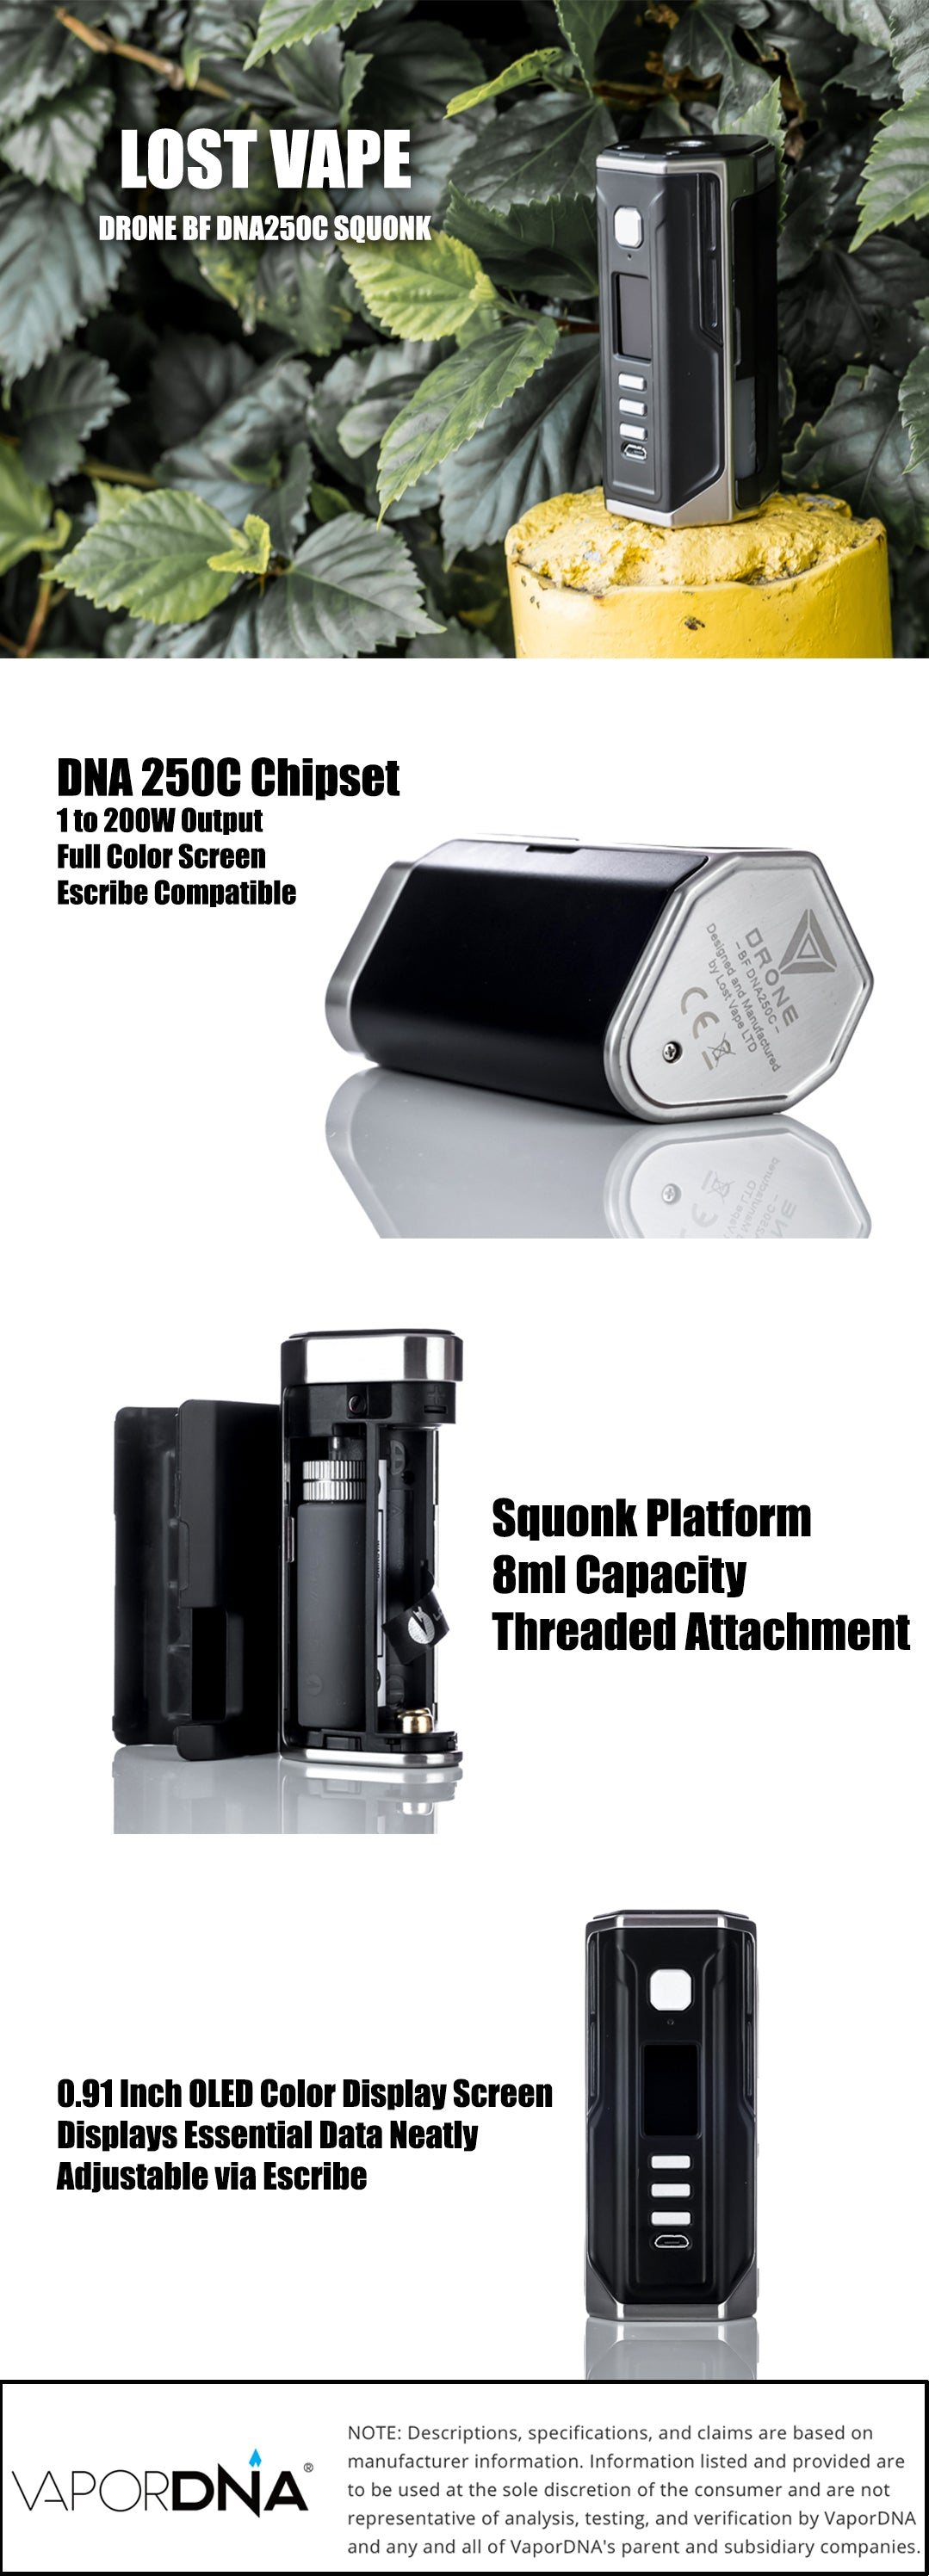 Lost Vape Drone BF Squonk DNA 250C Box Mod